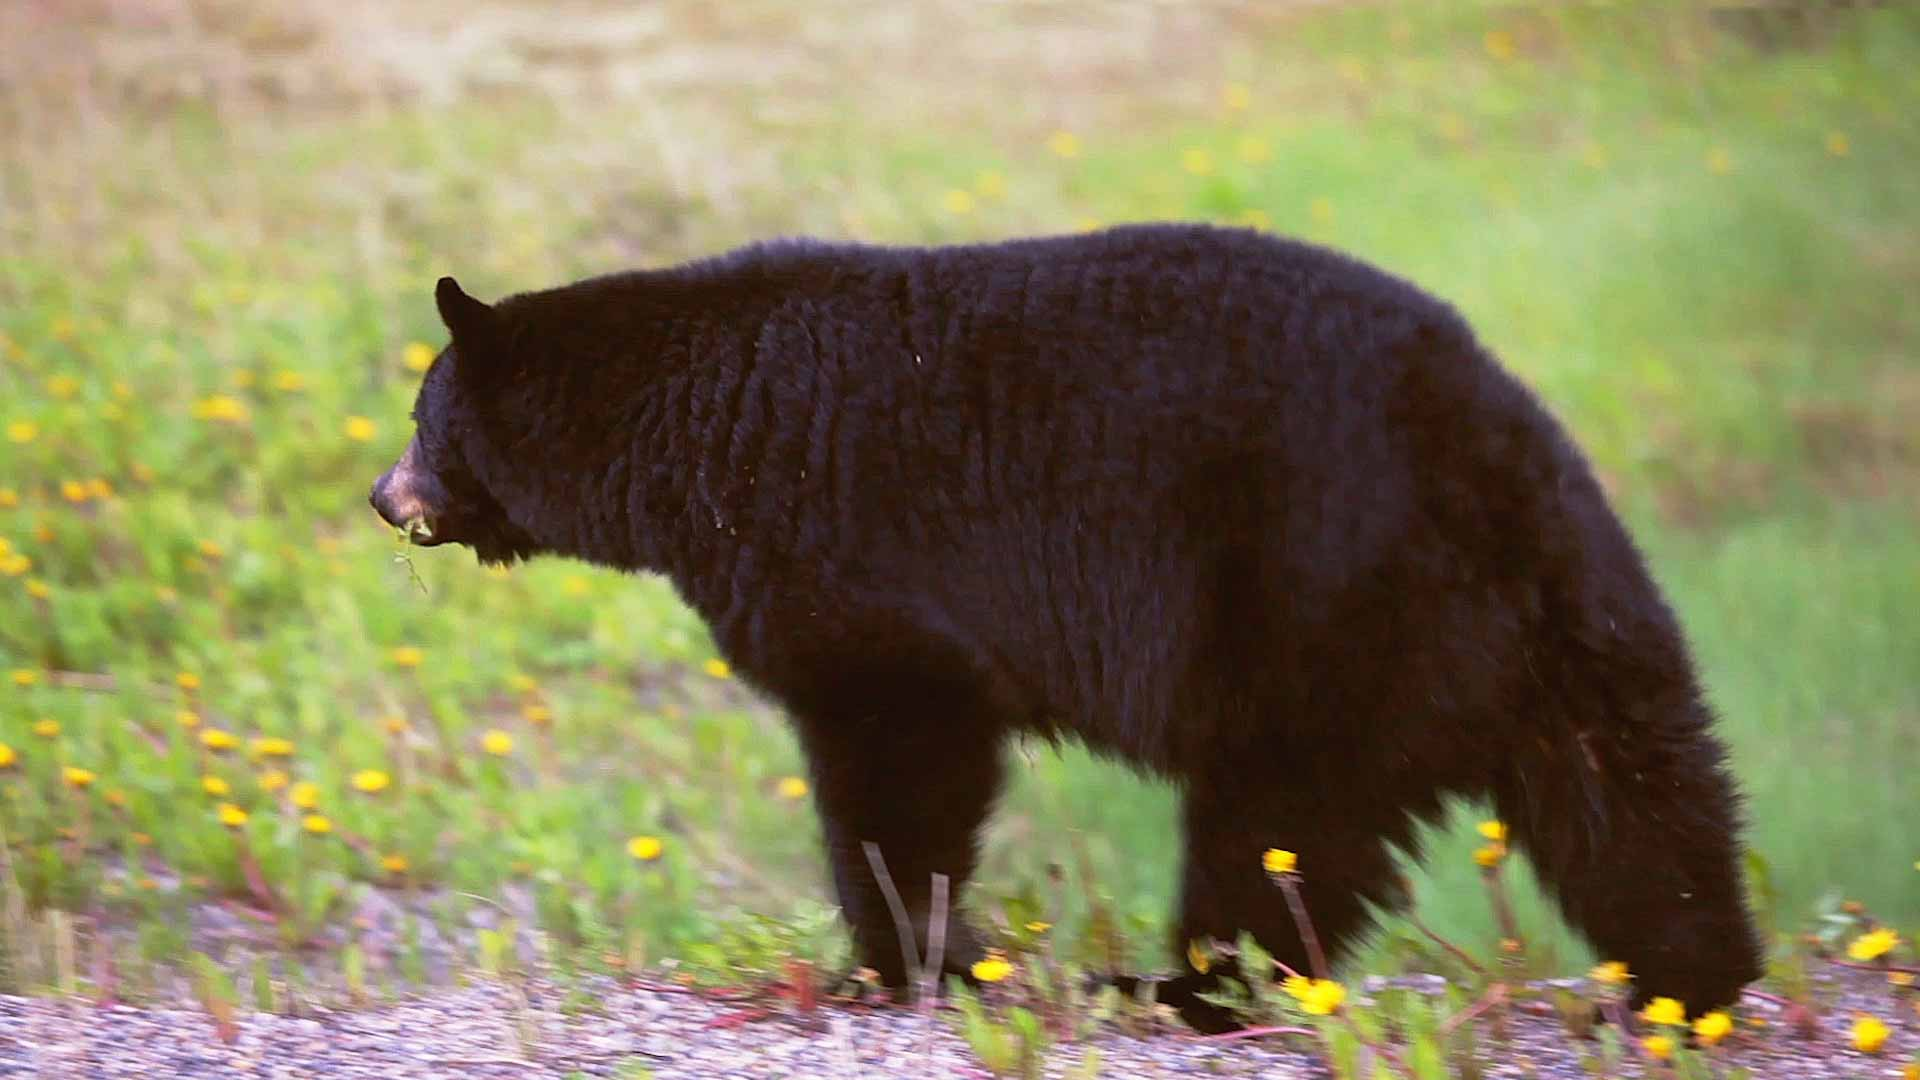 Black bear walking in field